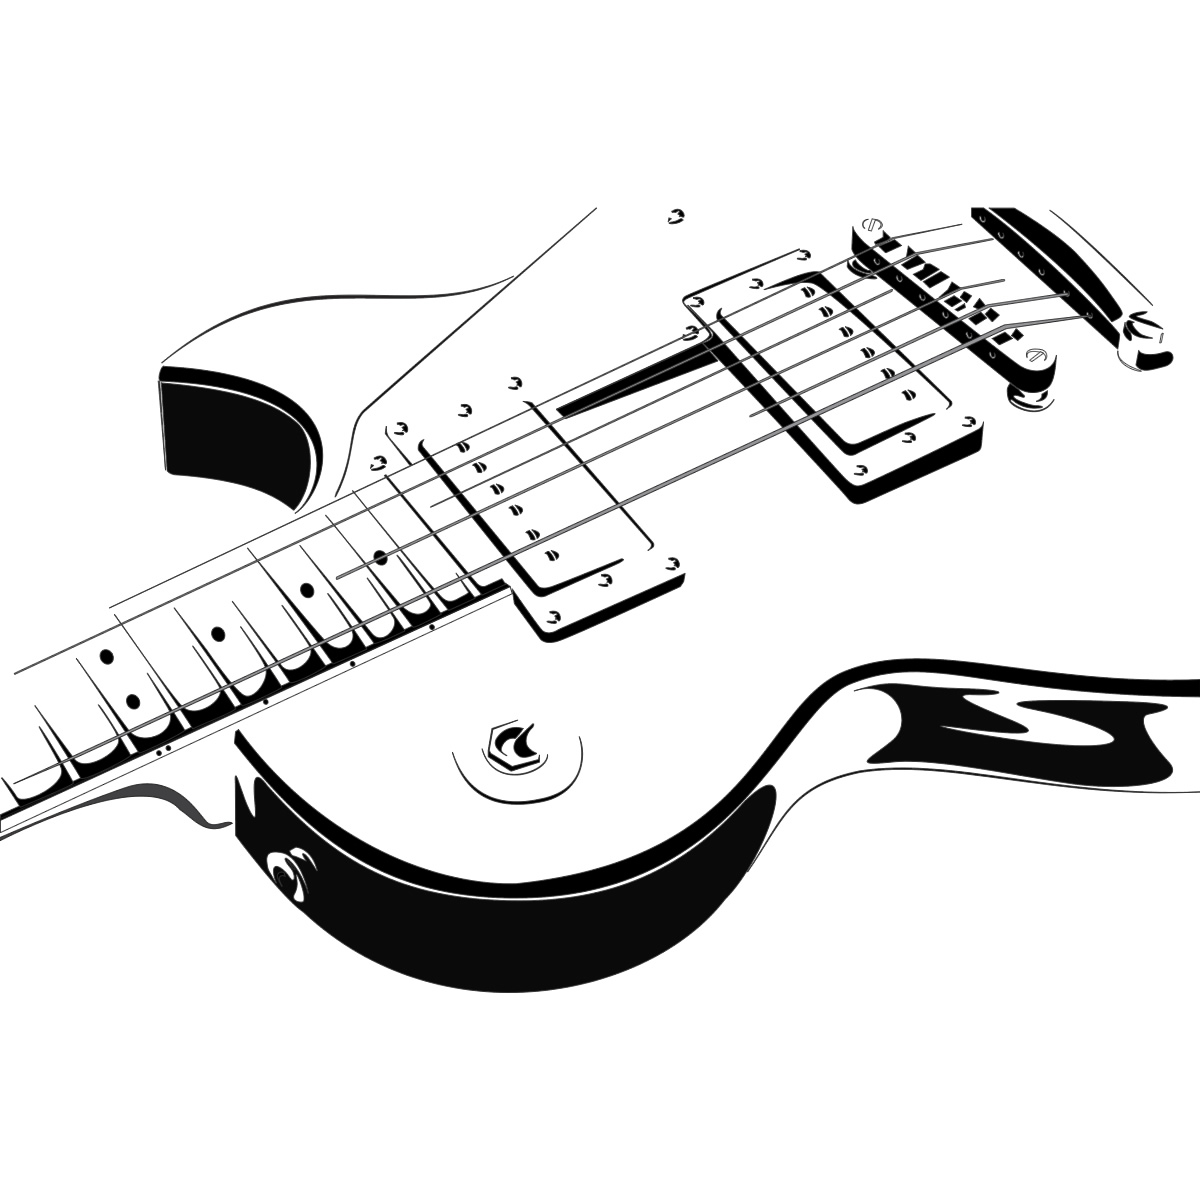 drawing guitar gibson jumbo acoustic guitar by marco033 on deviantart guitar drawing